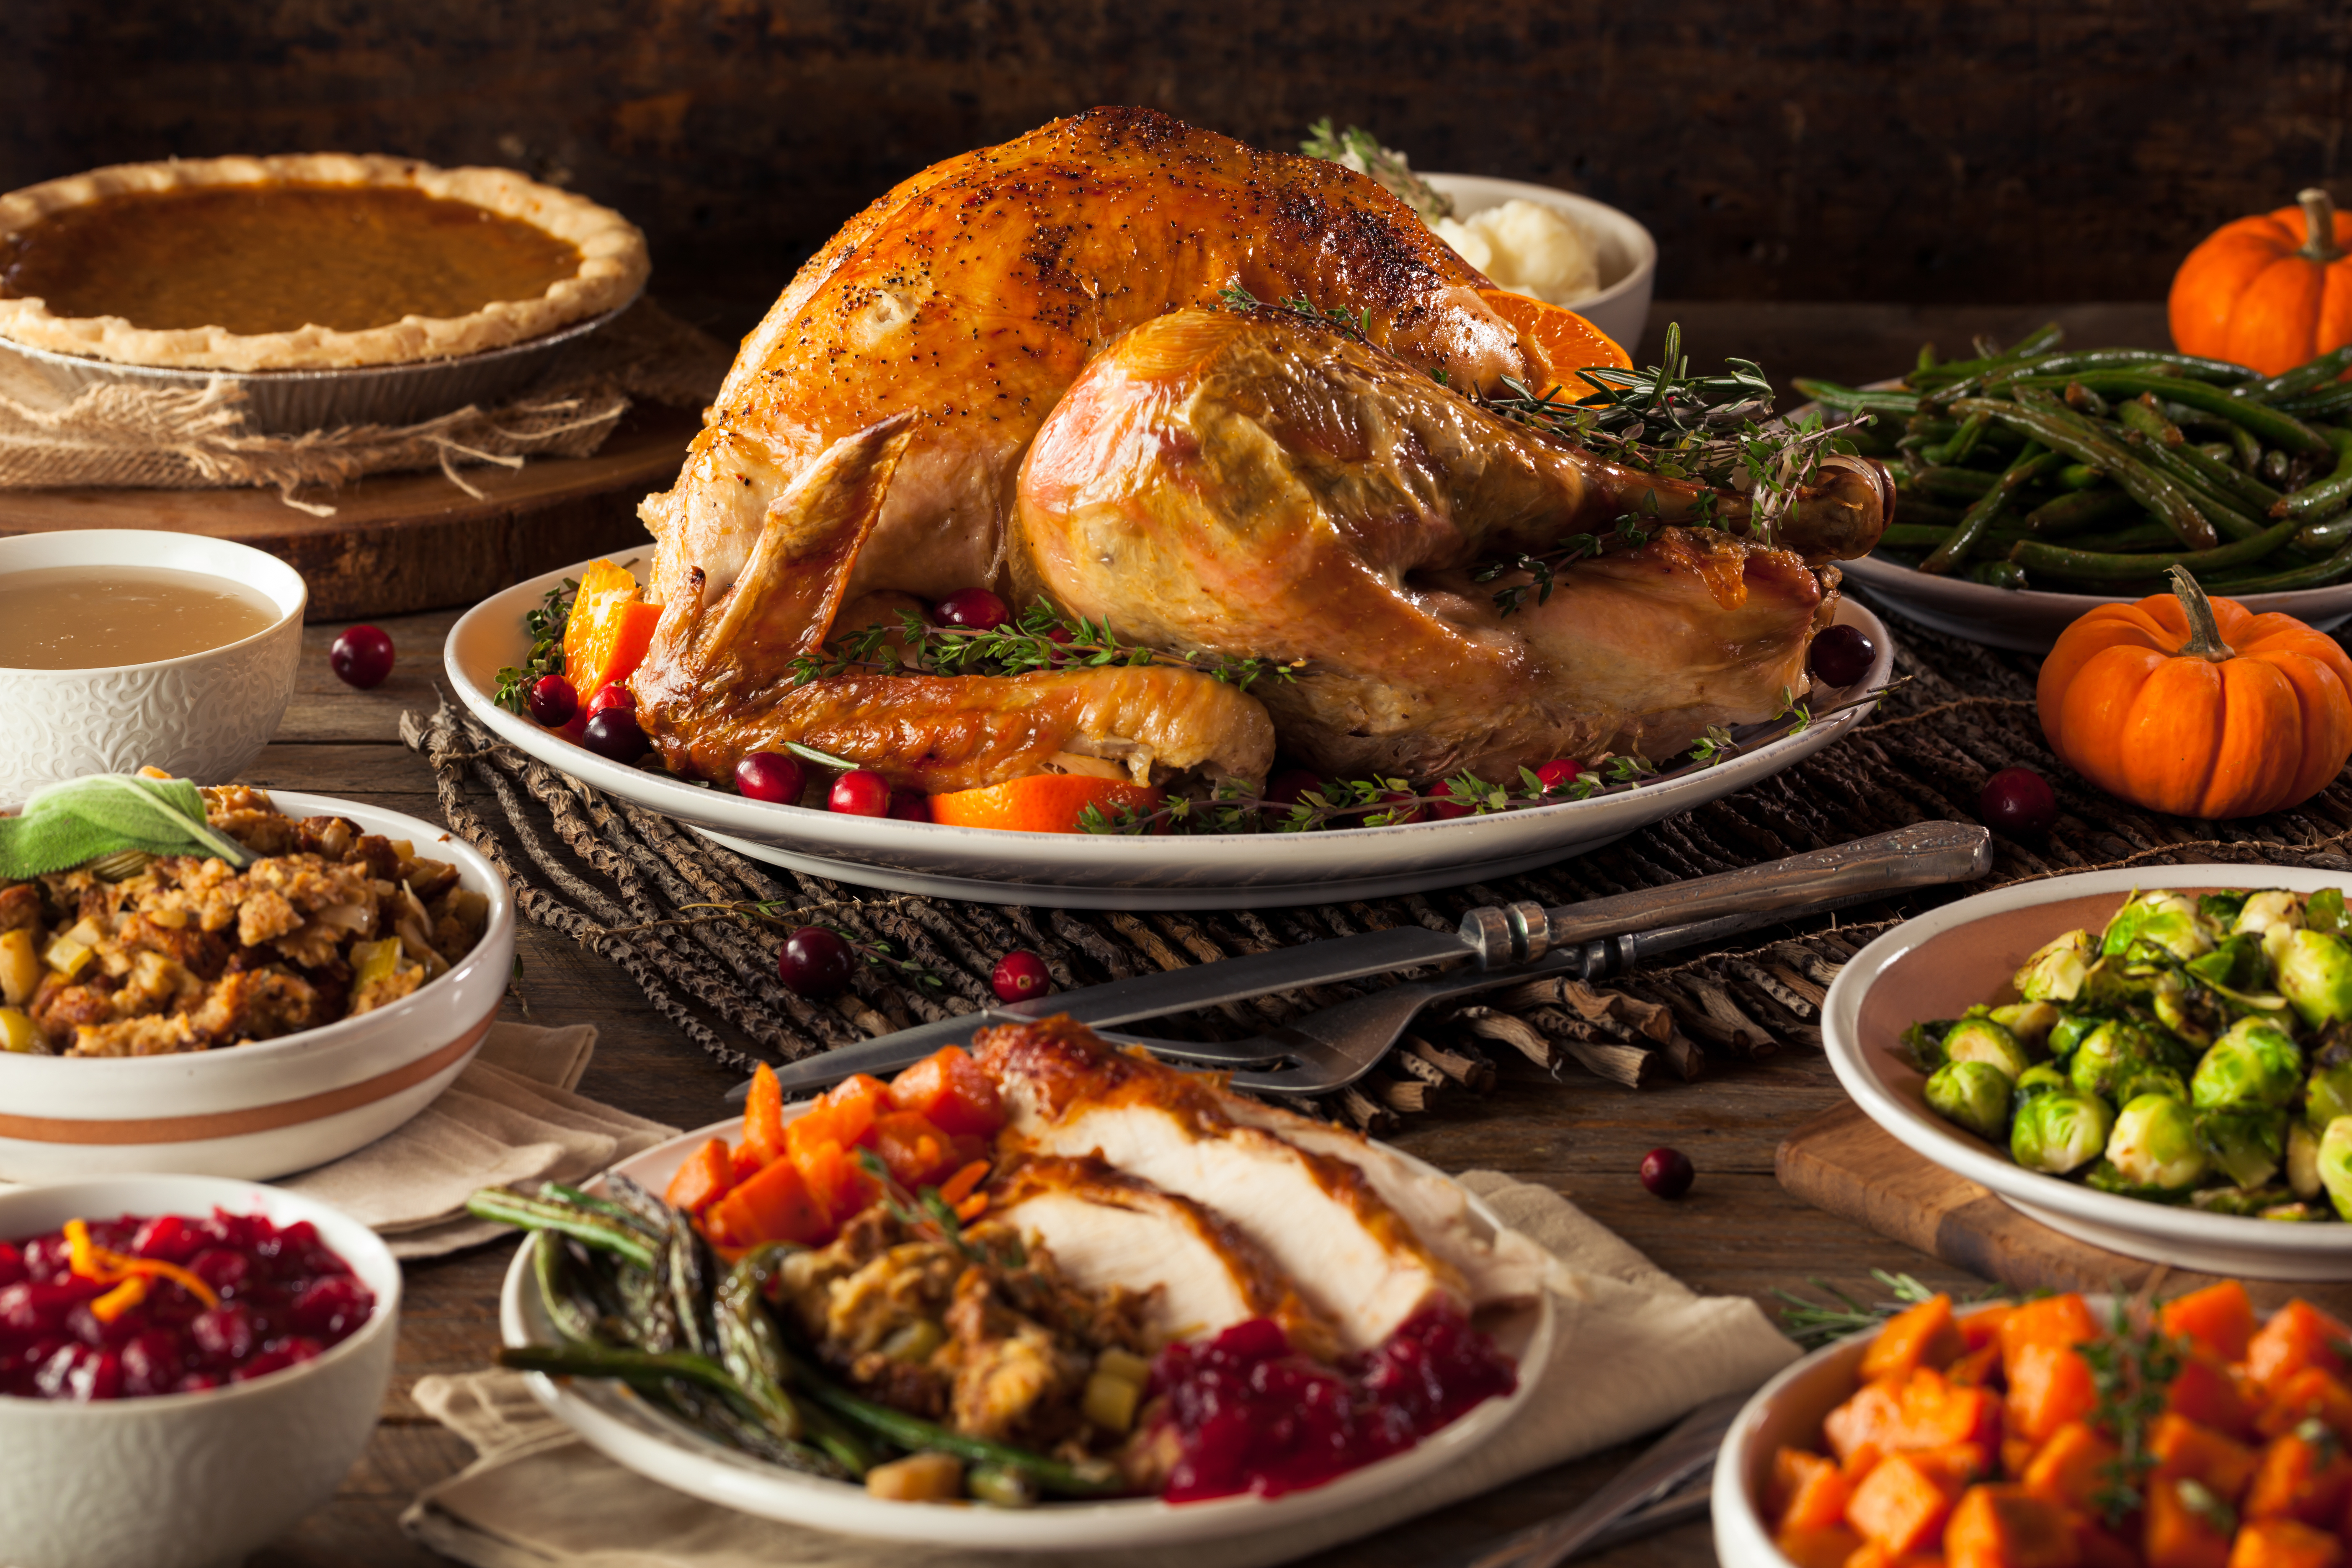 A thanksgiving spread covers a table, large roasted turkey on a white platter in the center, surrounded by sides and pumpkin decor